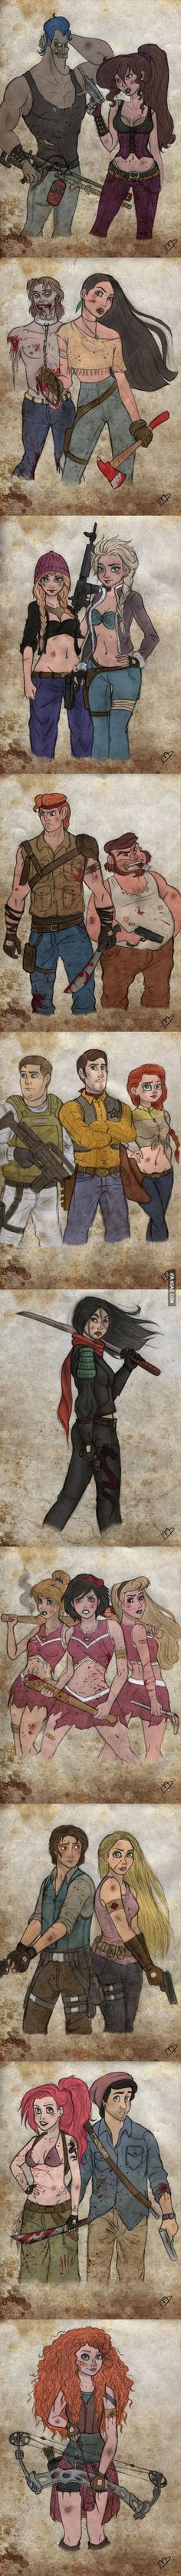 The Walking Disney Dead... Oh my God I love this! I dont know where to re-pin it!